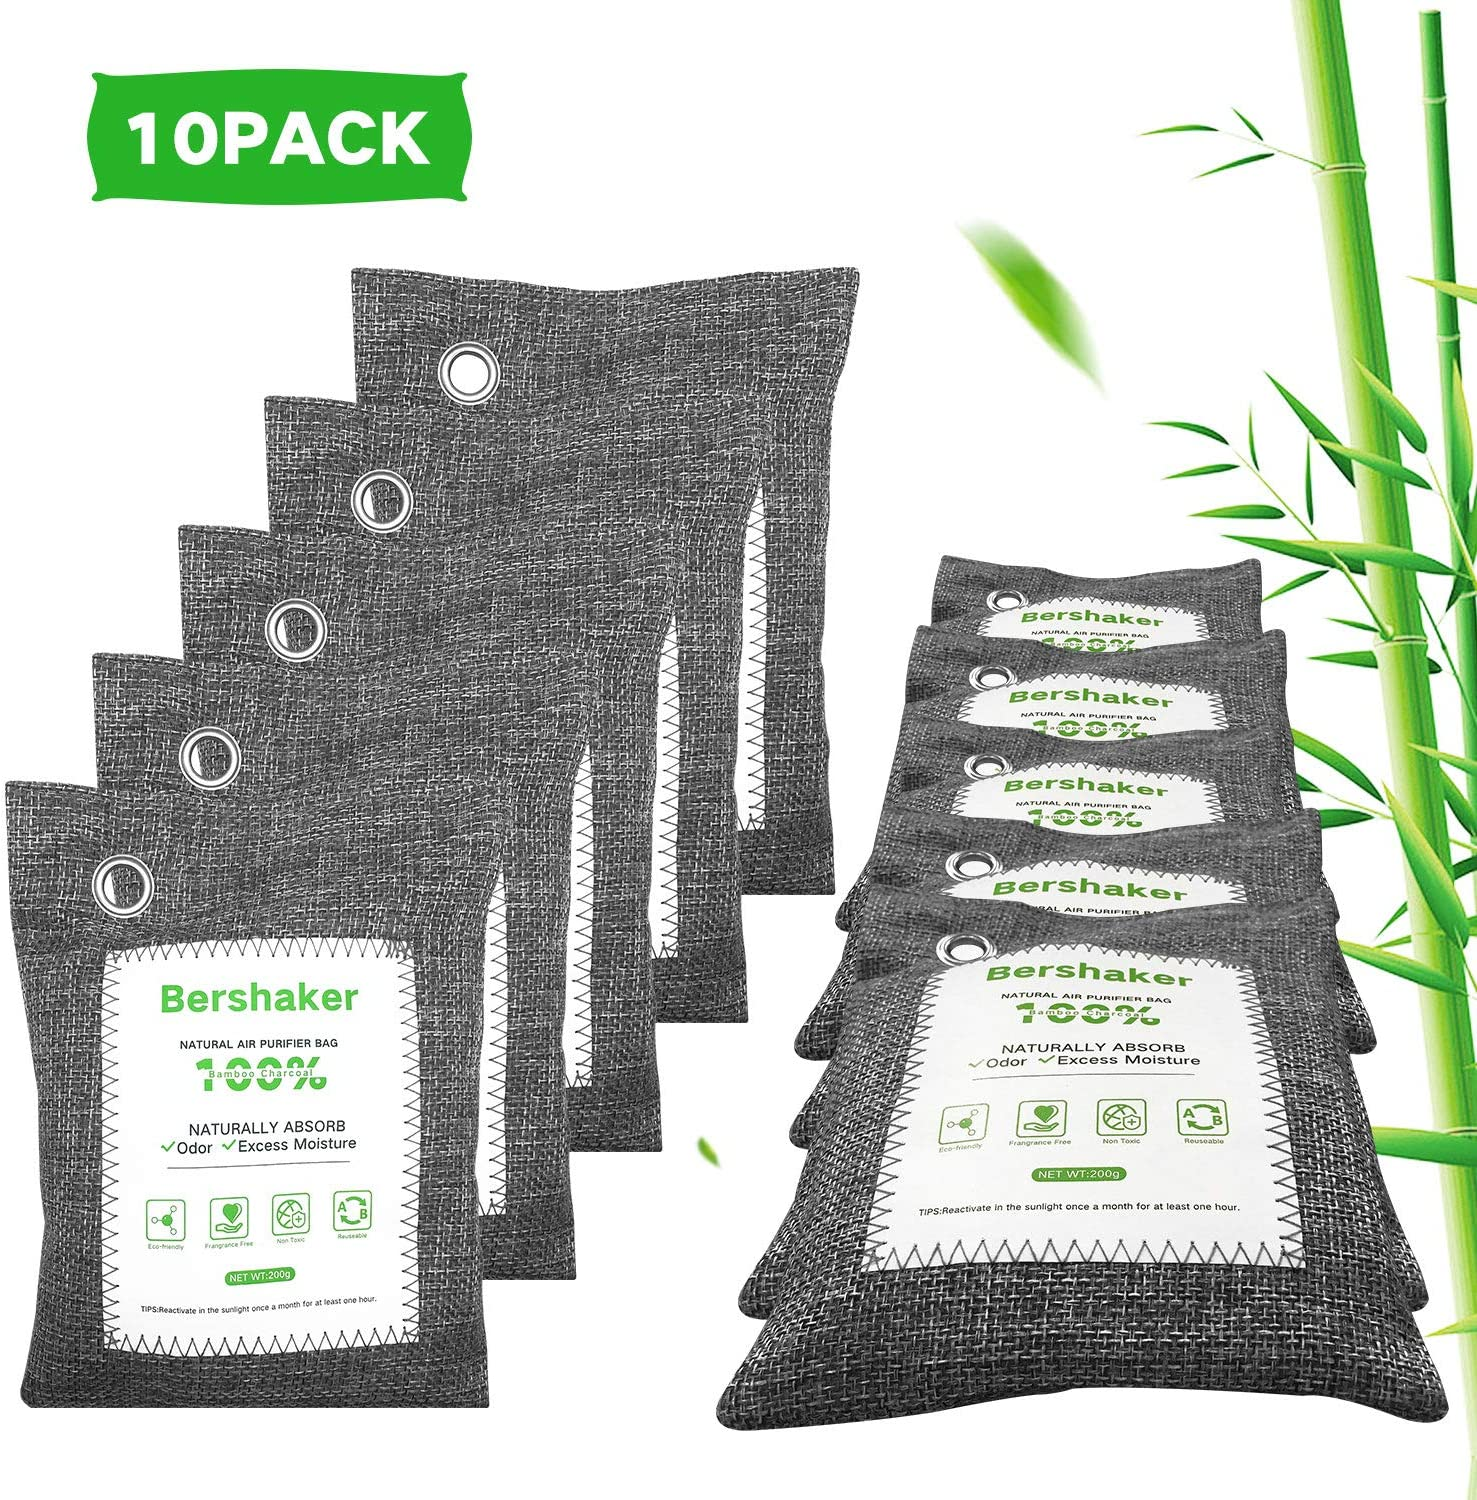 Charcoal Bags,10 Pack Bamboo Charcoal Air Purifying Bags,Breathe Green Charcoal Bags for Home,Air Freshener Bags,Activated Charcoal Odor Moisture Absorber for Home,Car,Closet,Bathroom,Basement